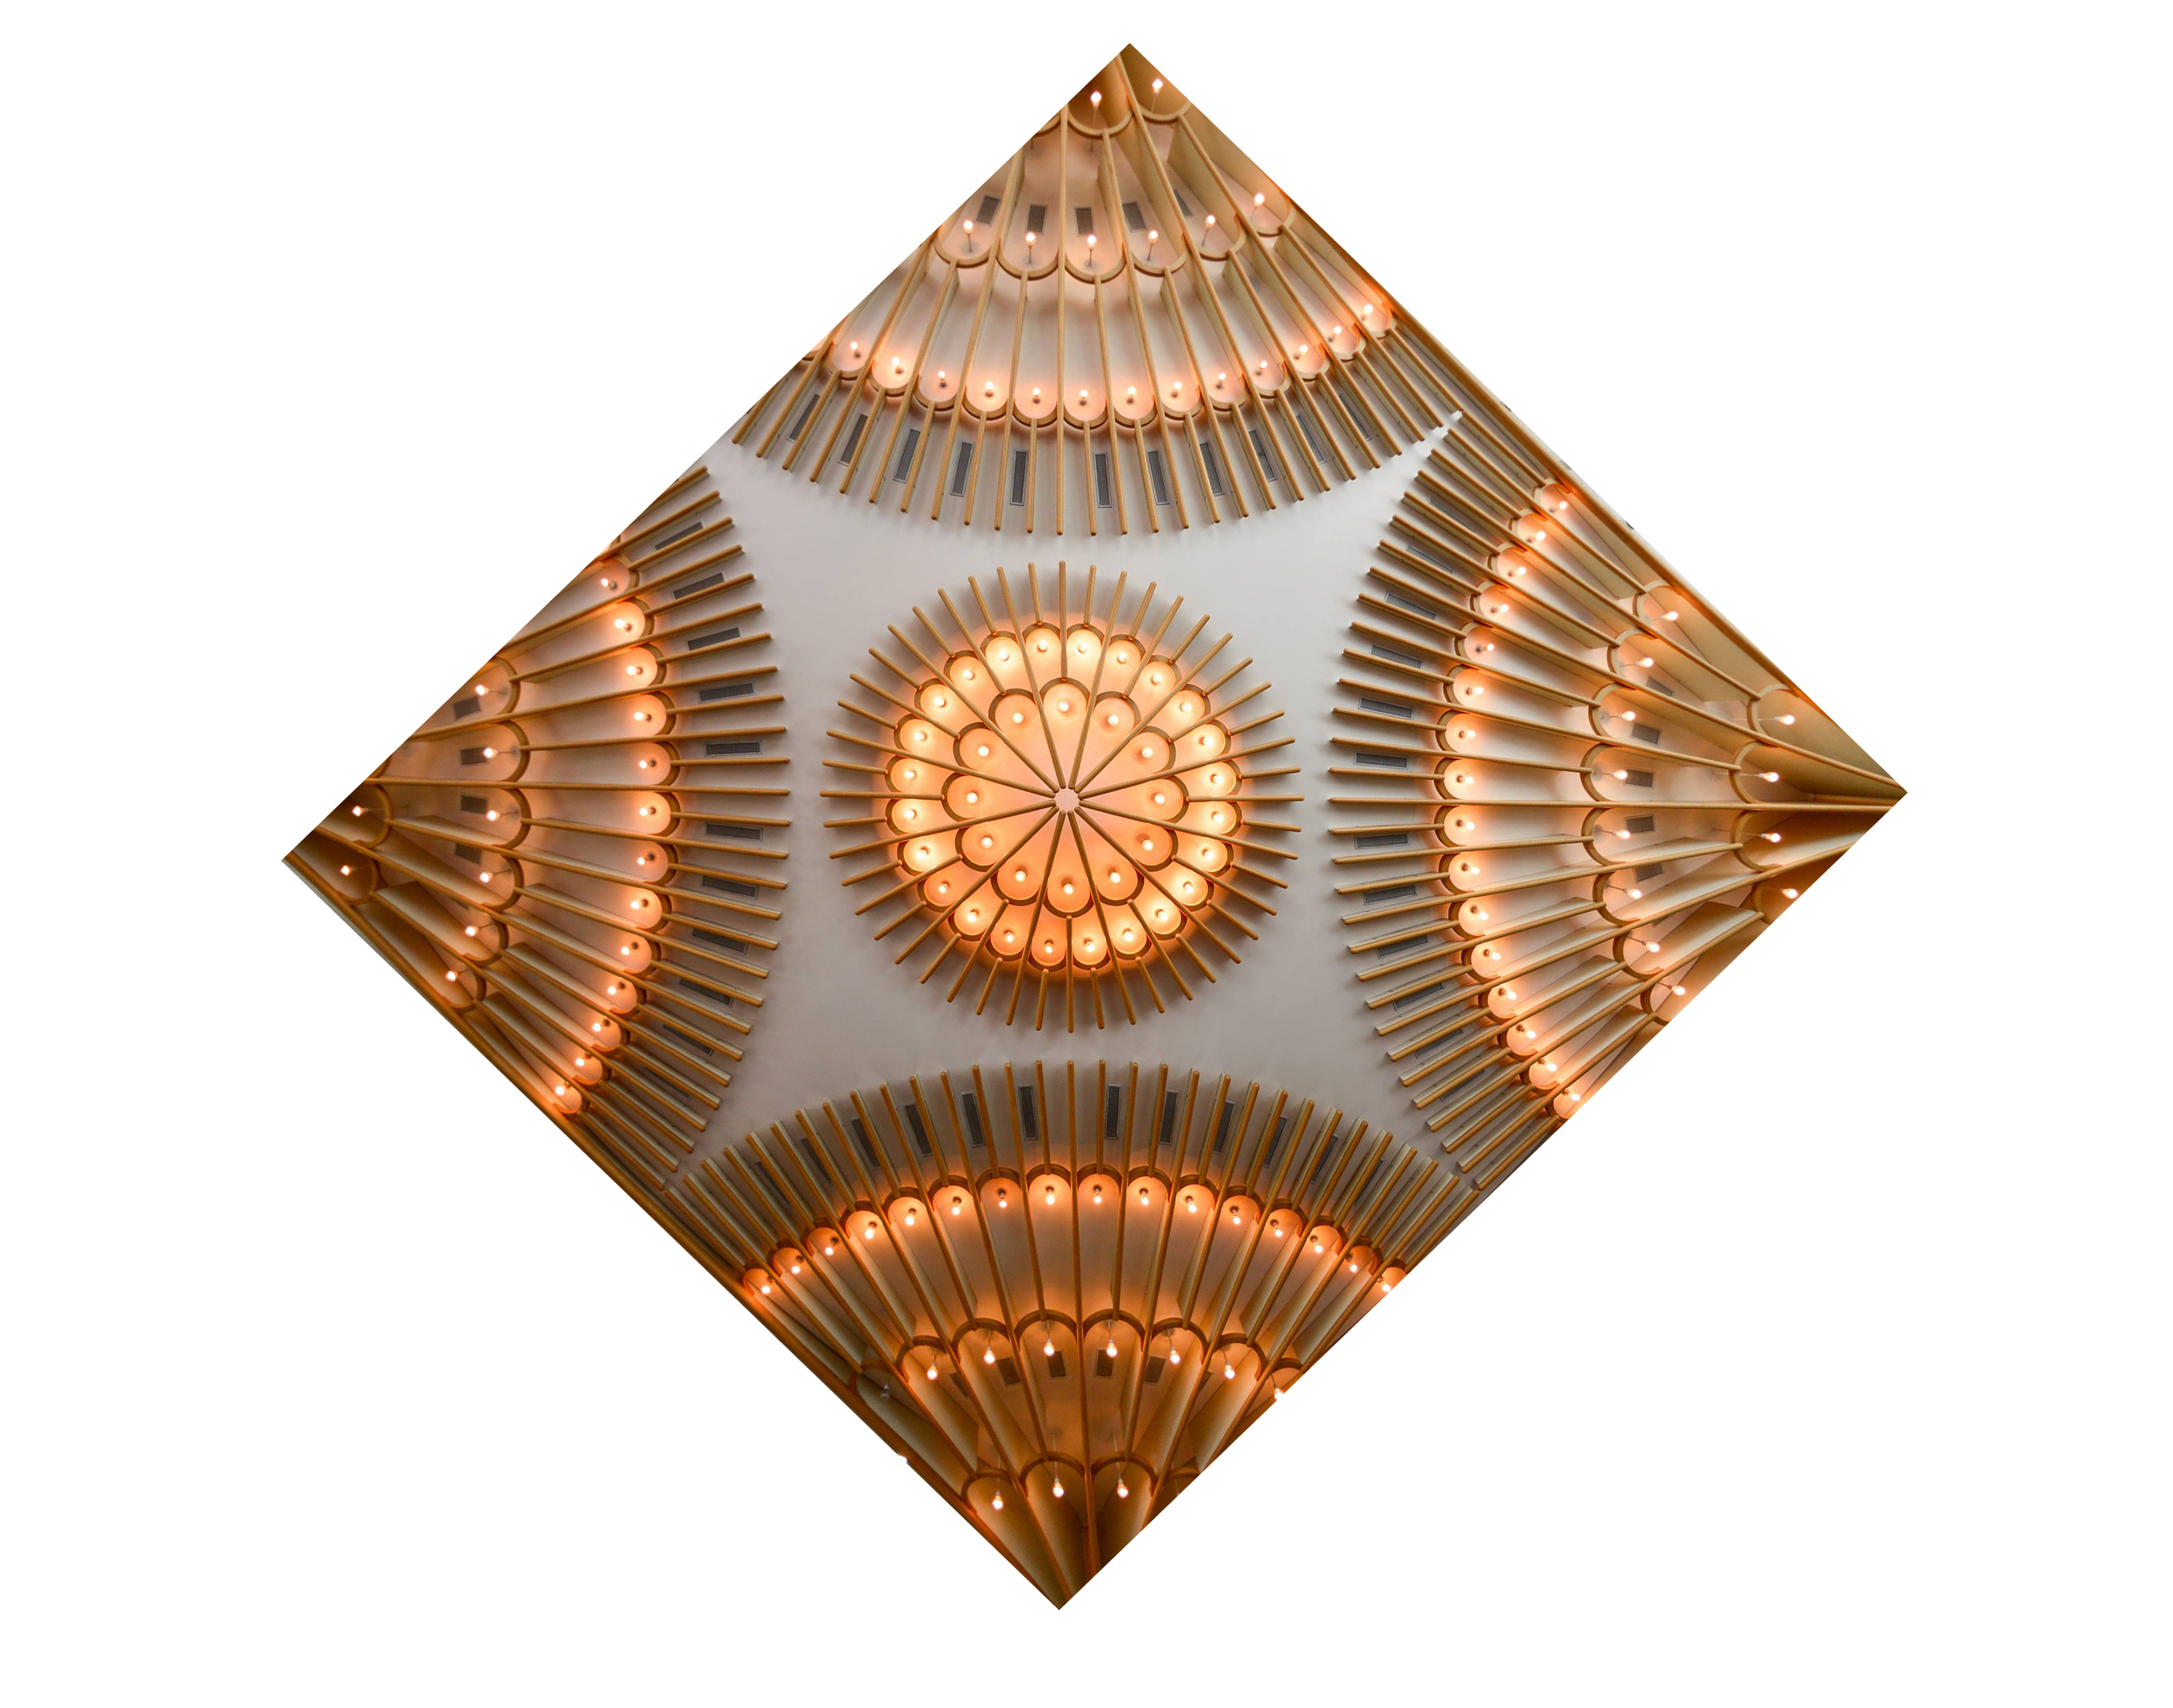 Platner Ceiling photo_edited-1.jpg